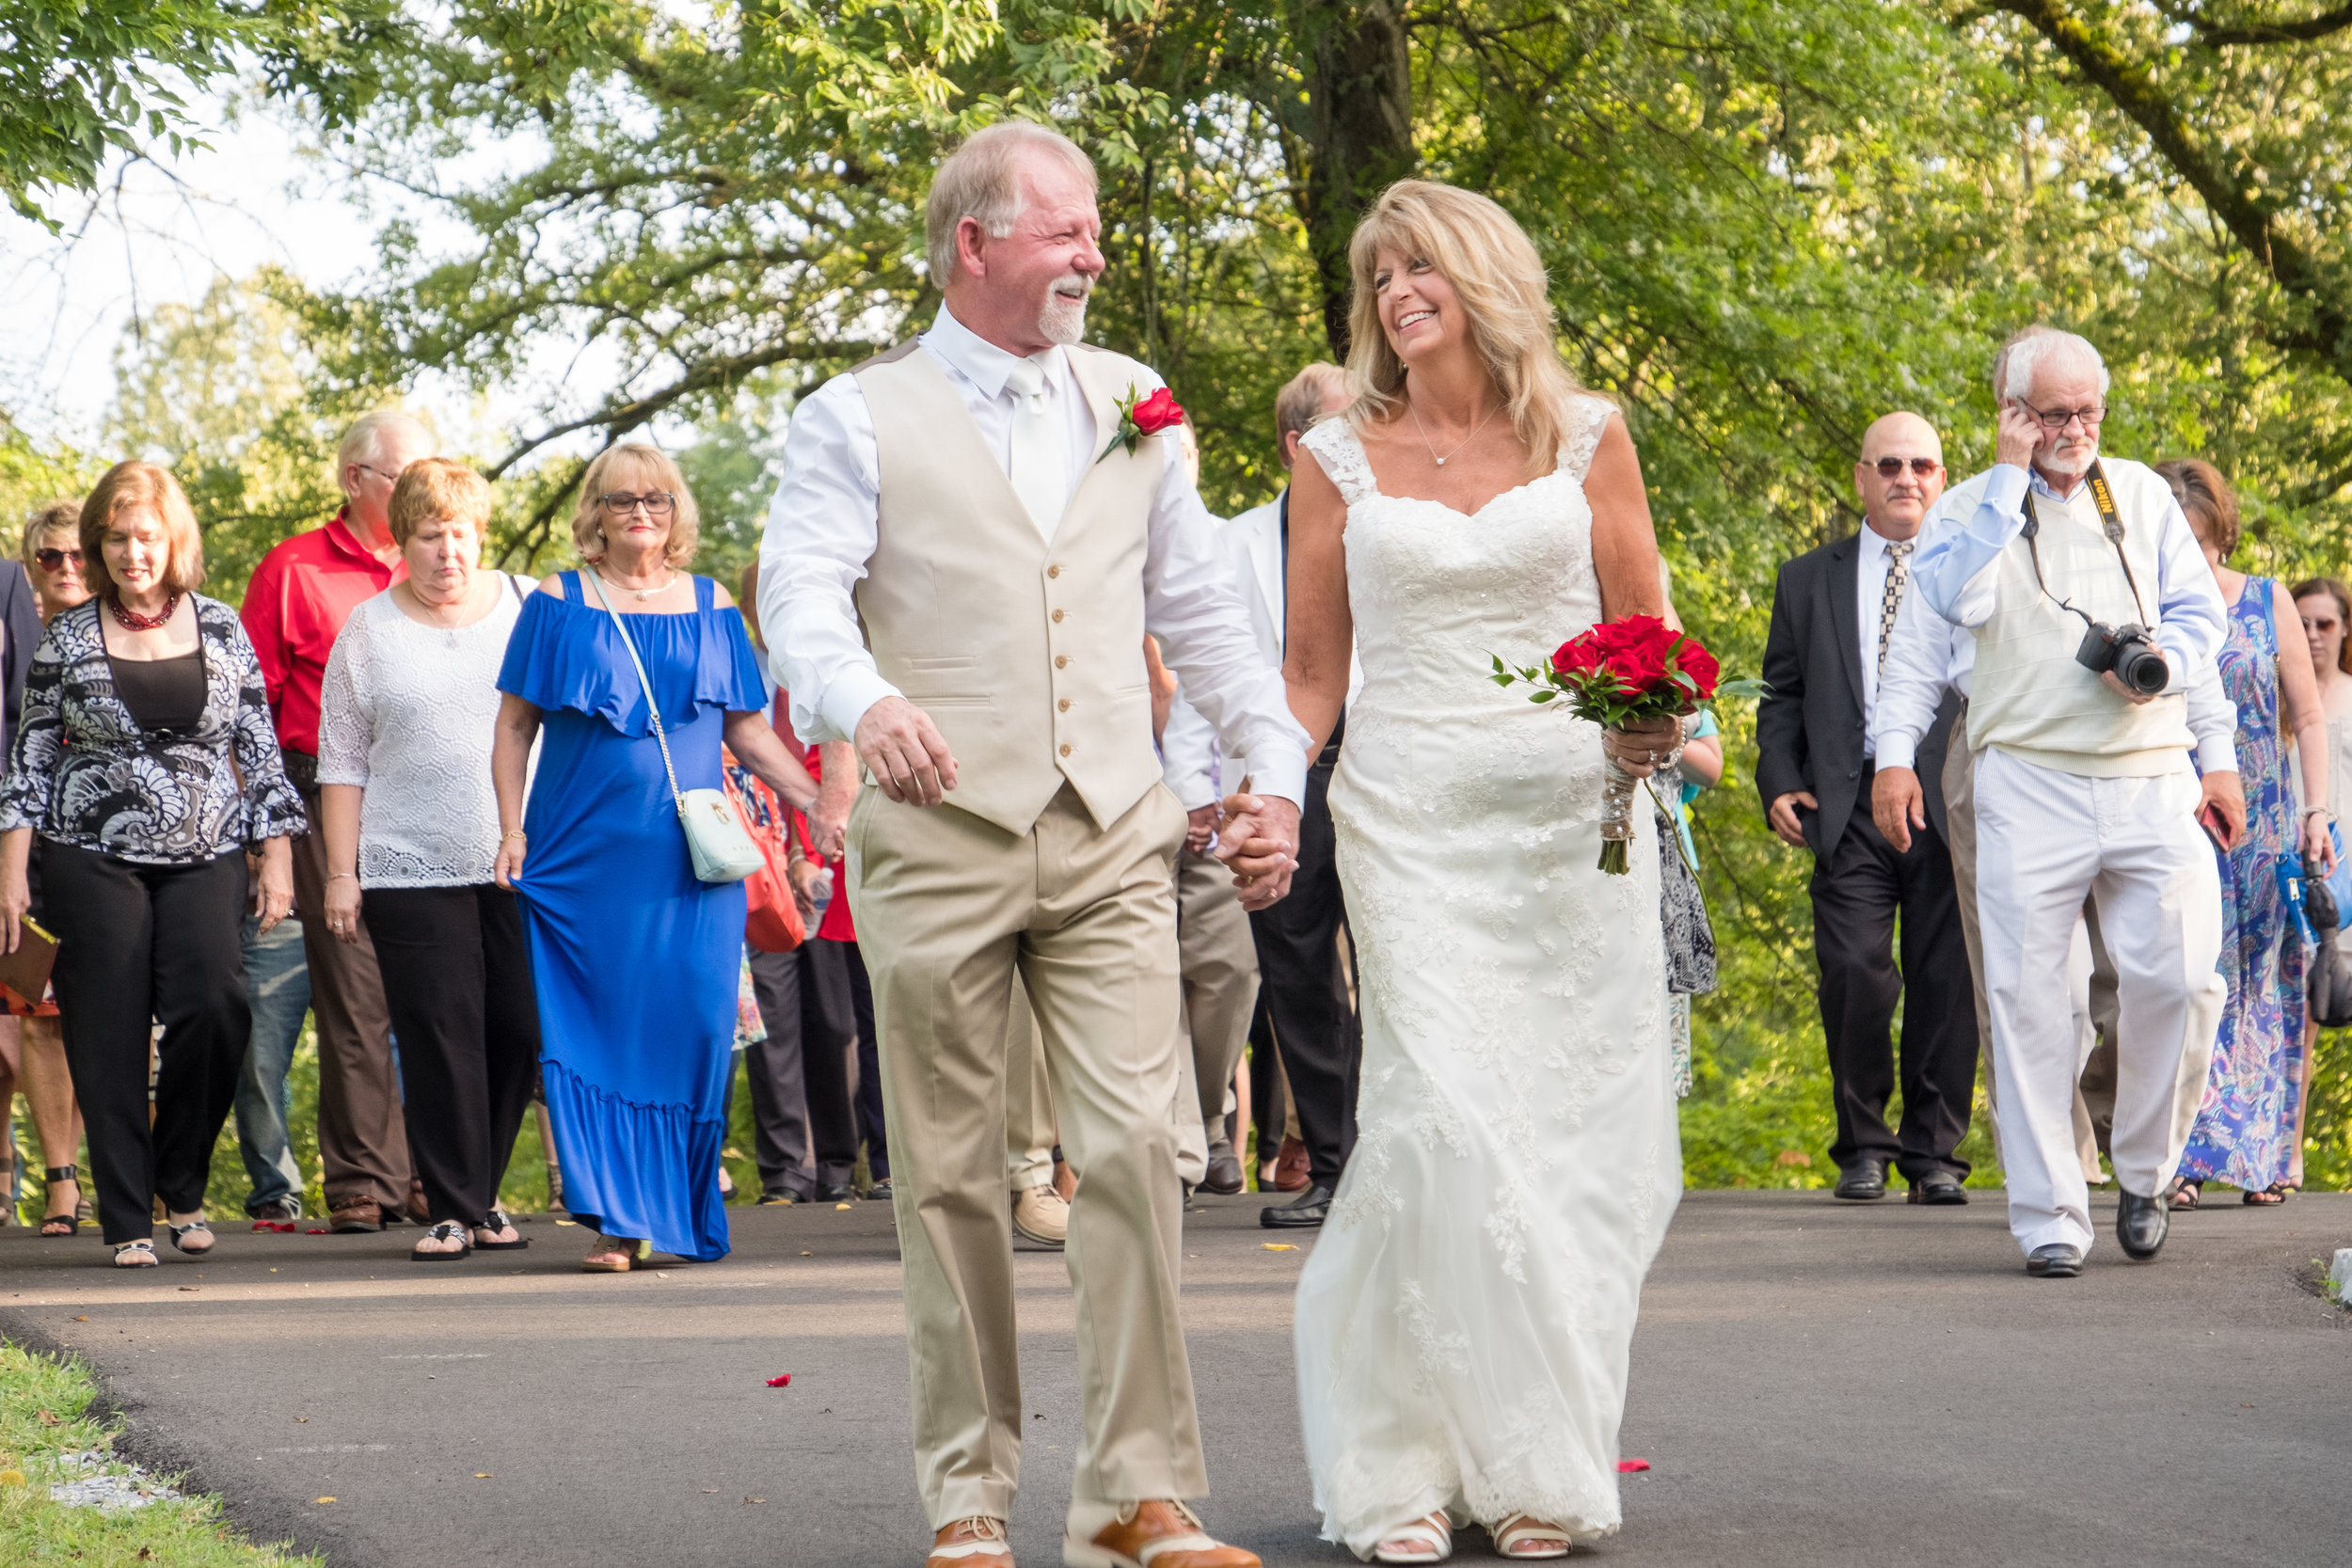 I loved Celia and Gary's idea to lead a parade of their guests to the ceremony.